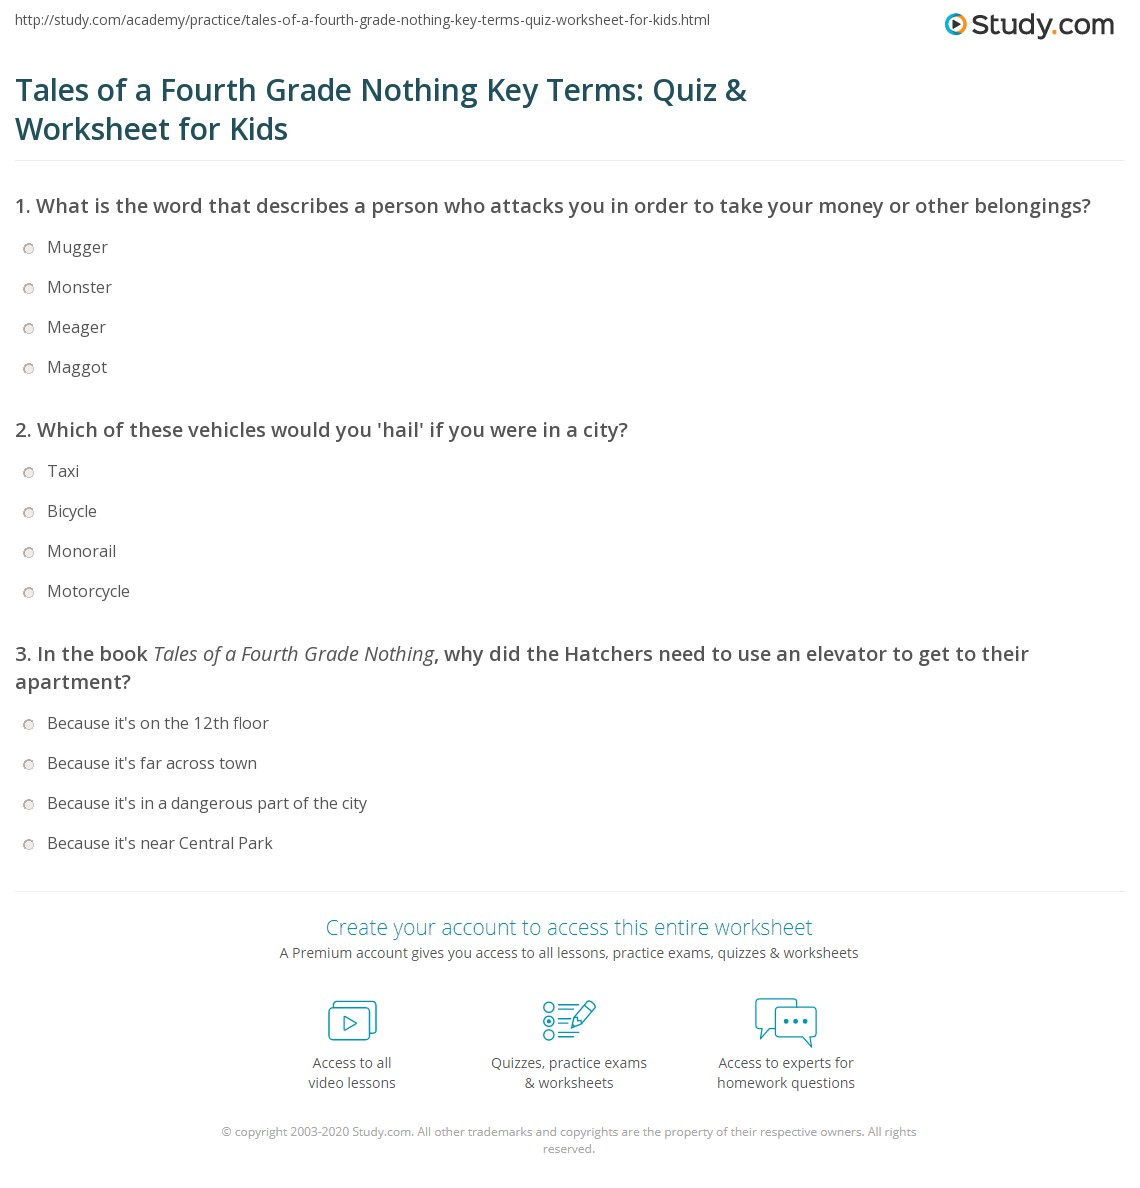 Tales Of A Fourth Grade Nothing Key Terms Quiz